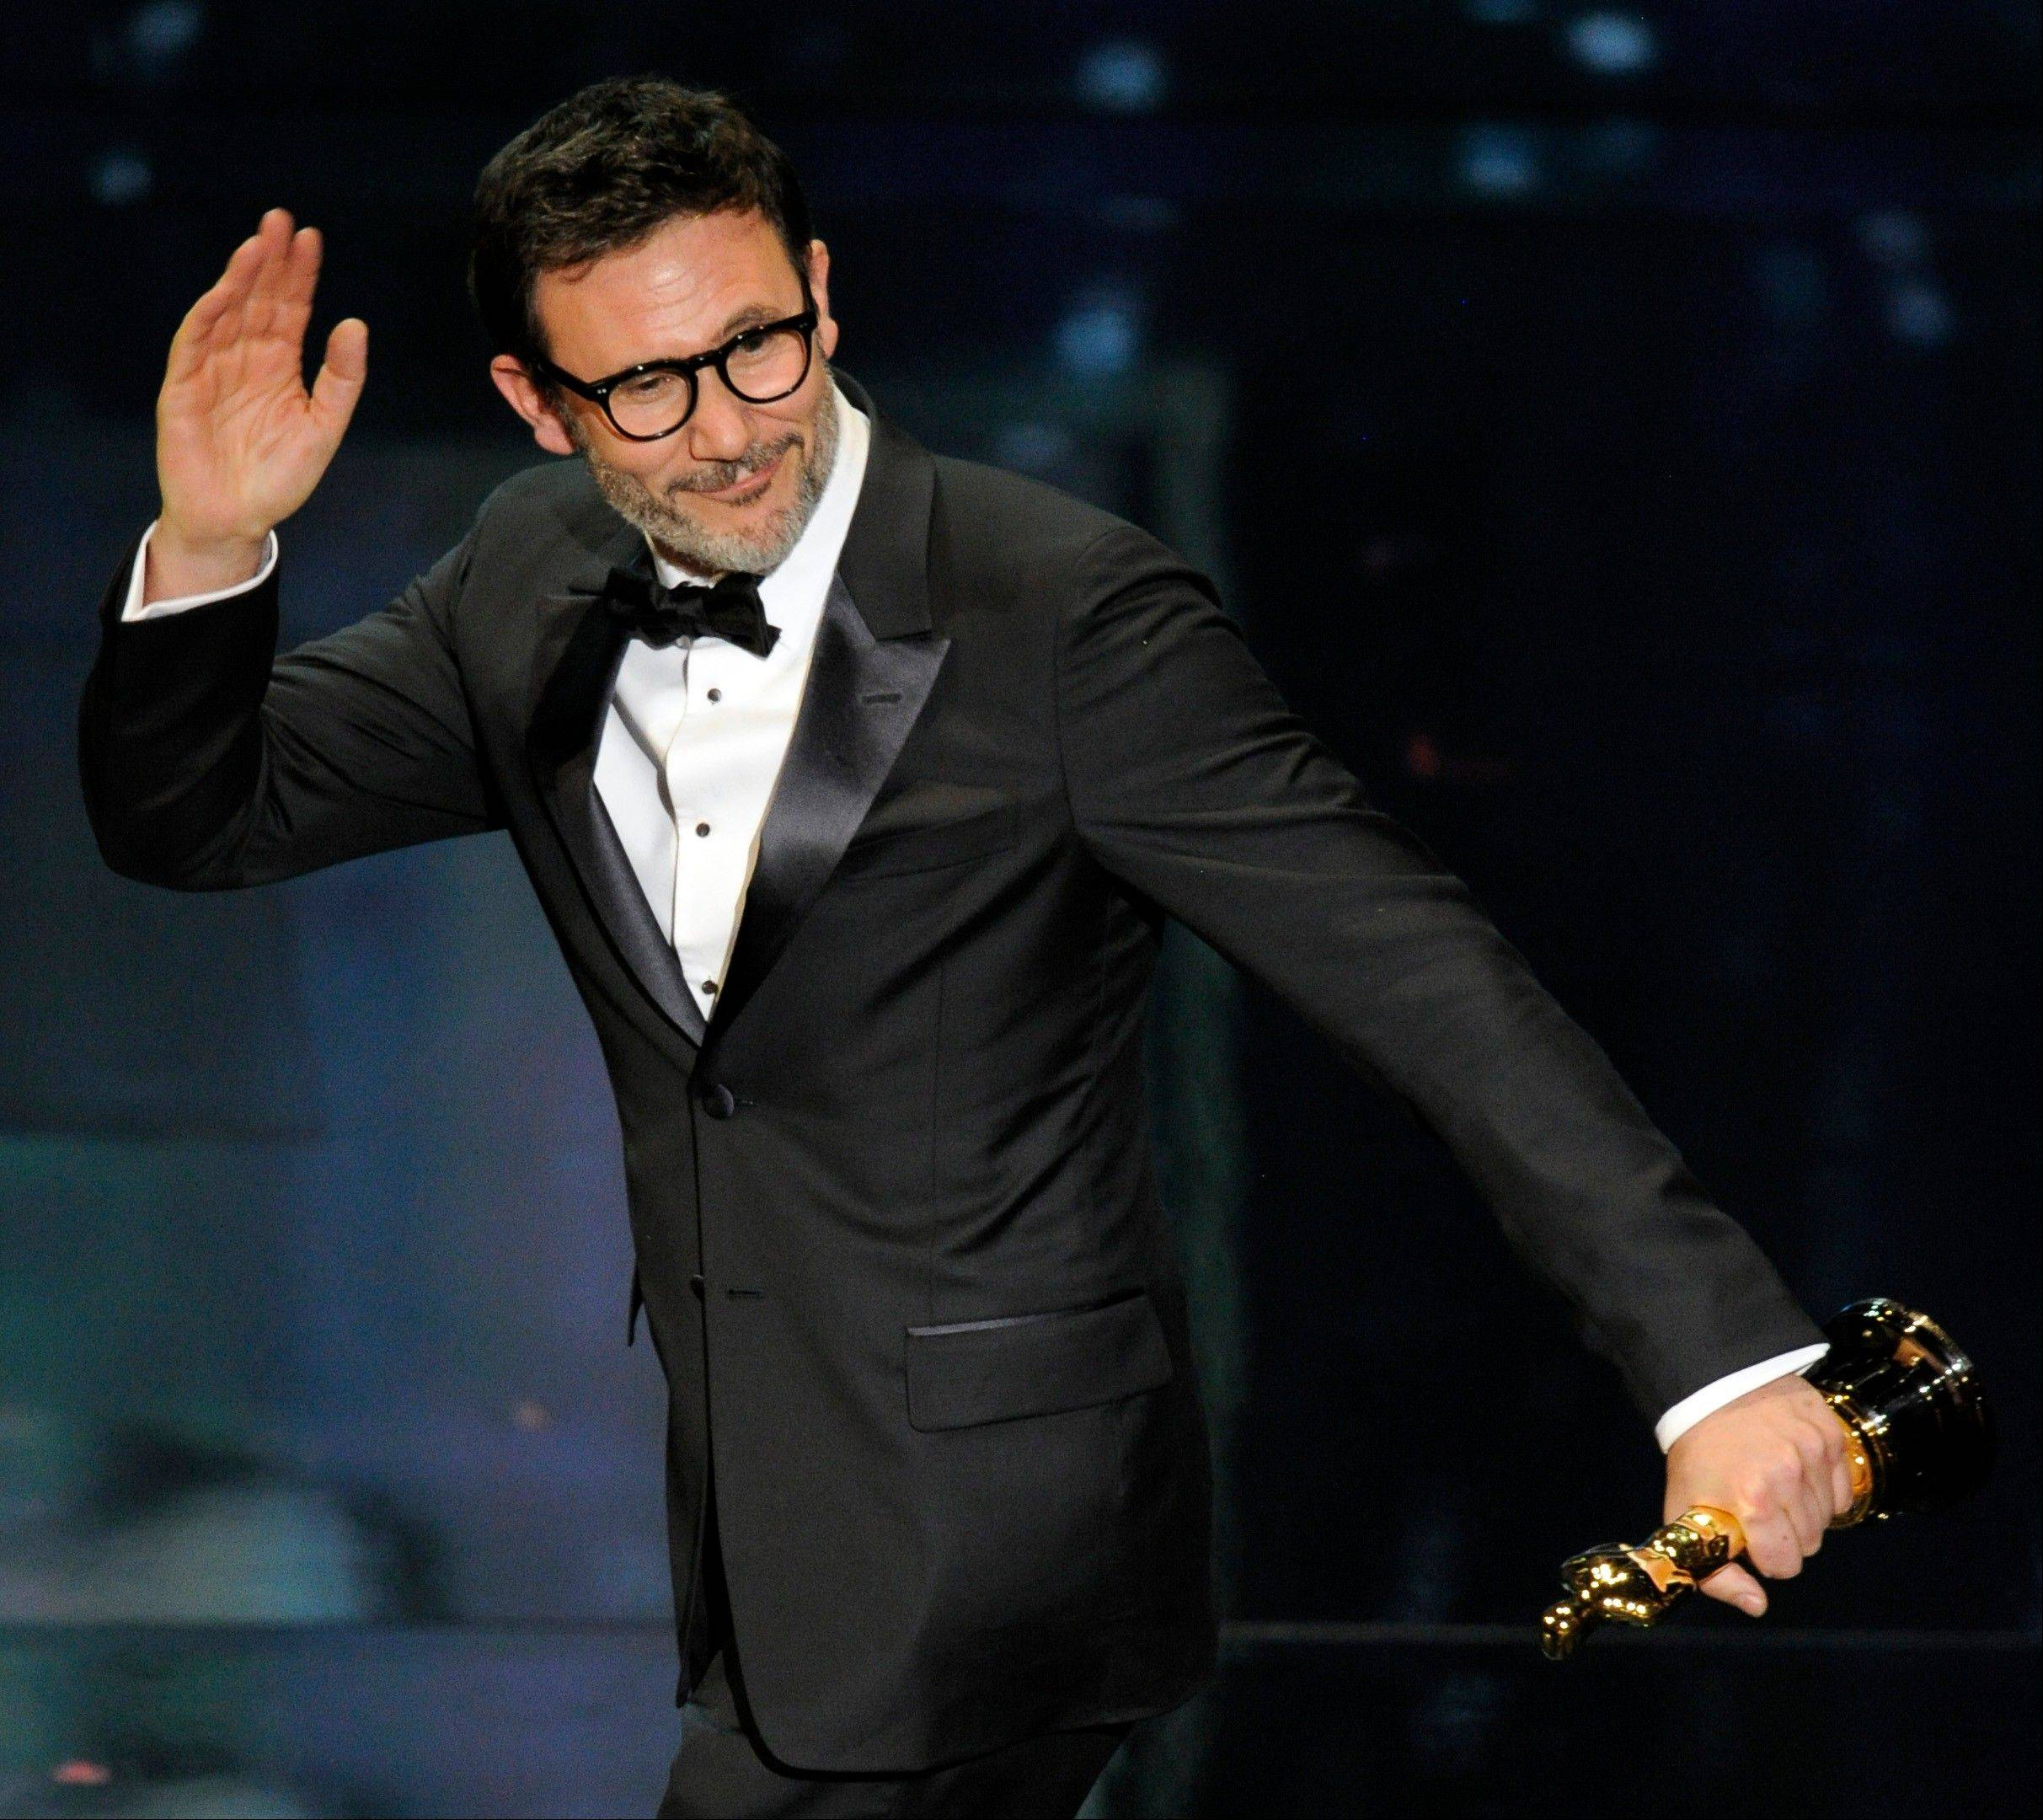 Michel Hazanavicius accepts the Oscar for Best Director for 'The Artist.'